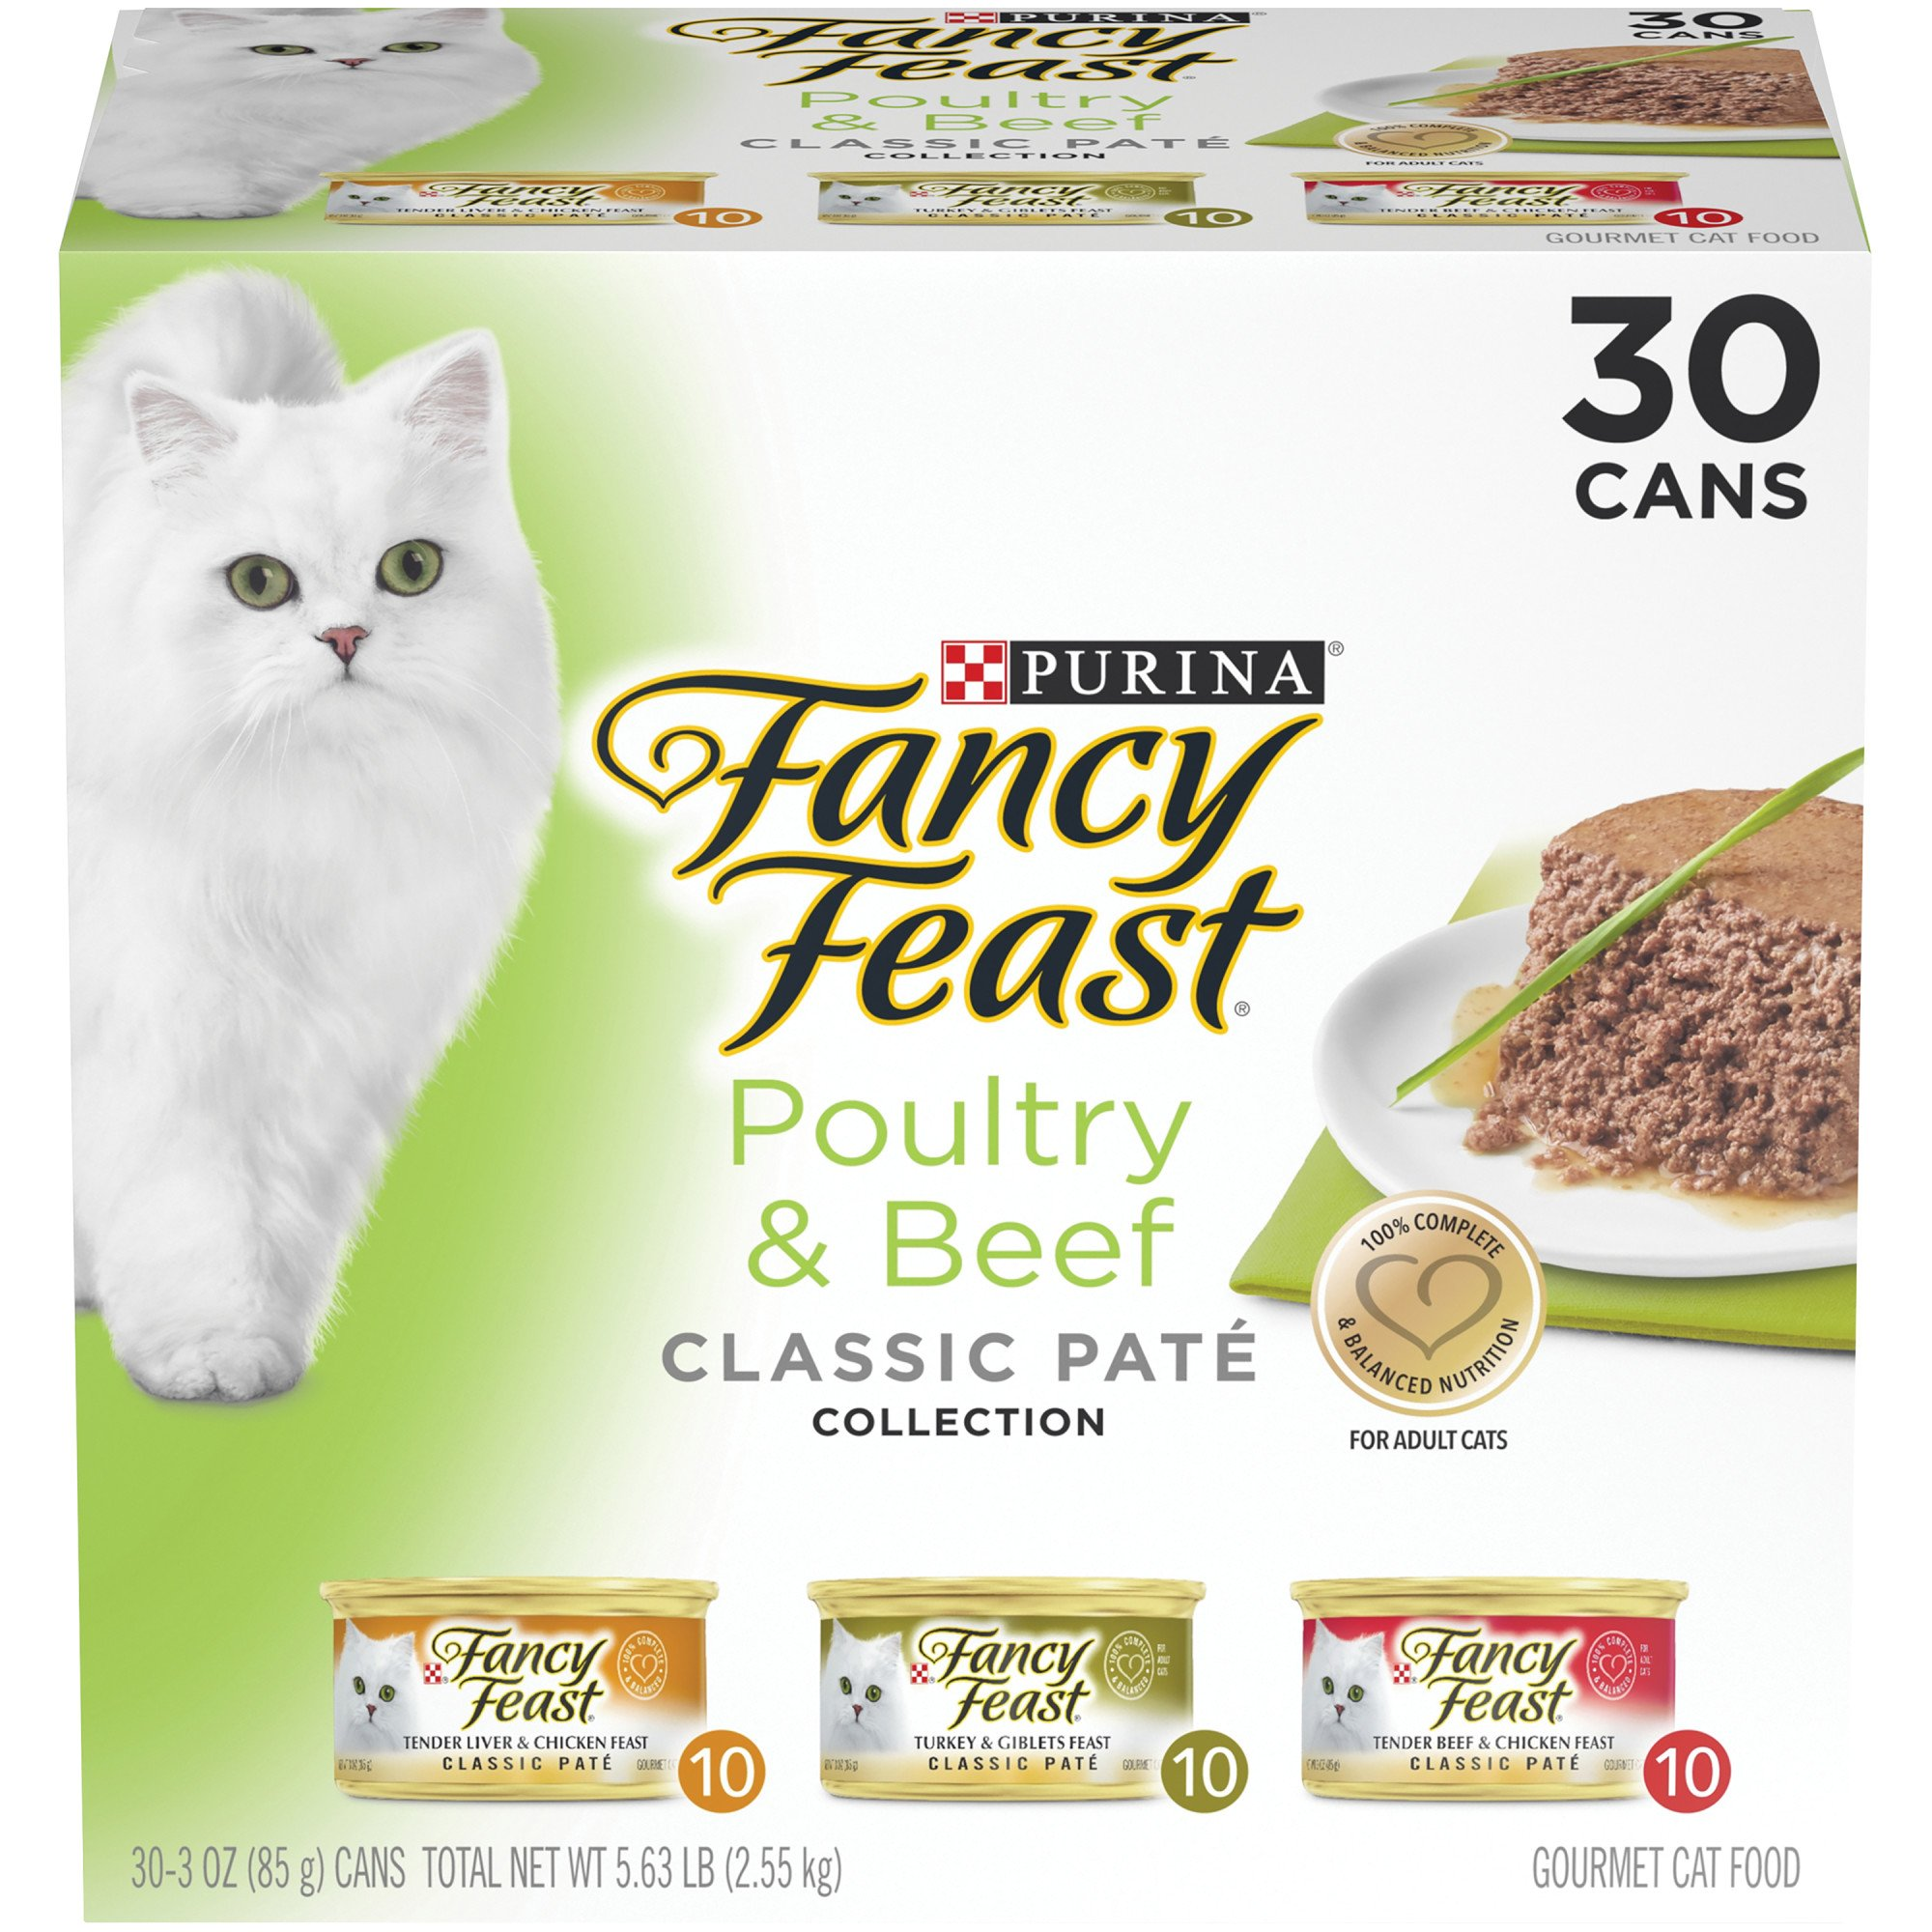 Purina Fancy Feast Classic Pate Poultry & Beef Collection Wet Cat Food Variety Pack, 3 oz., Count of 30